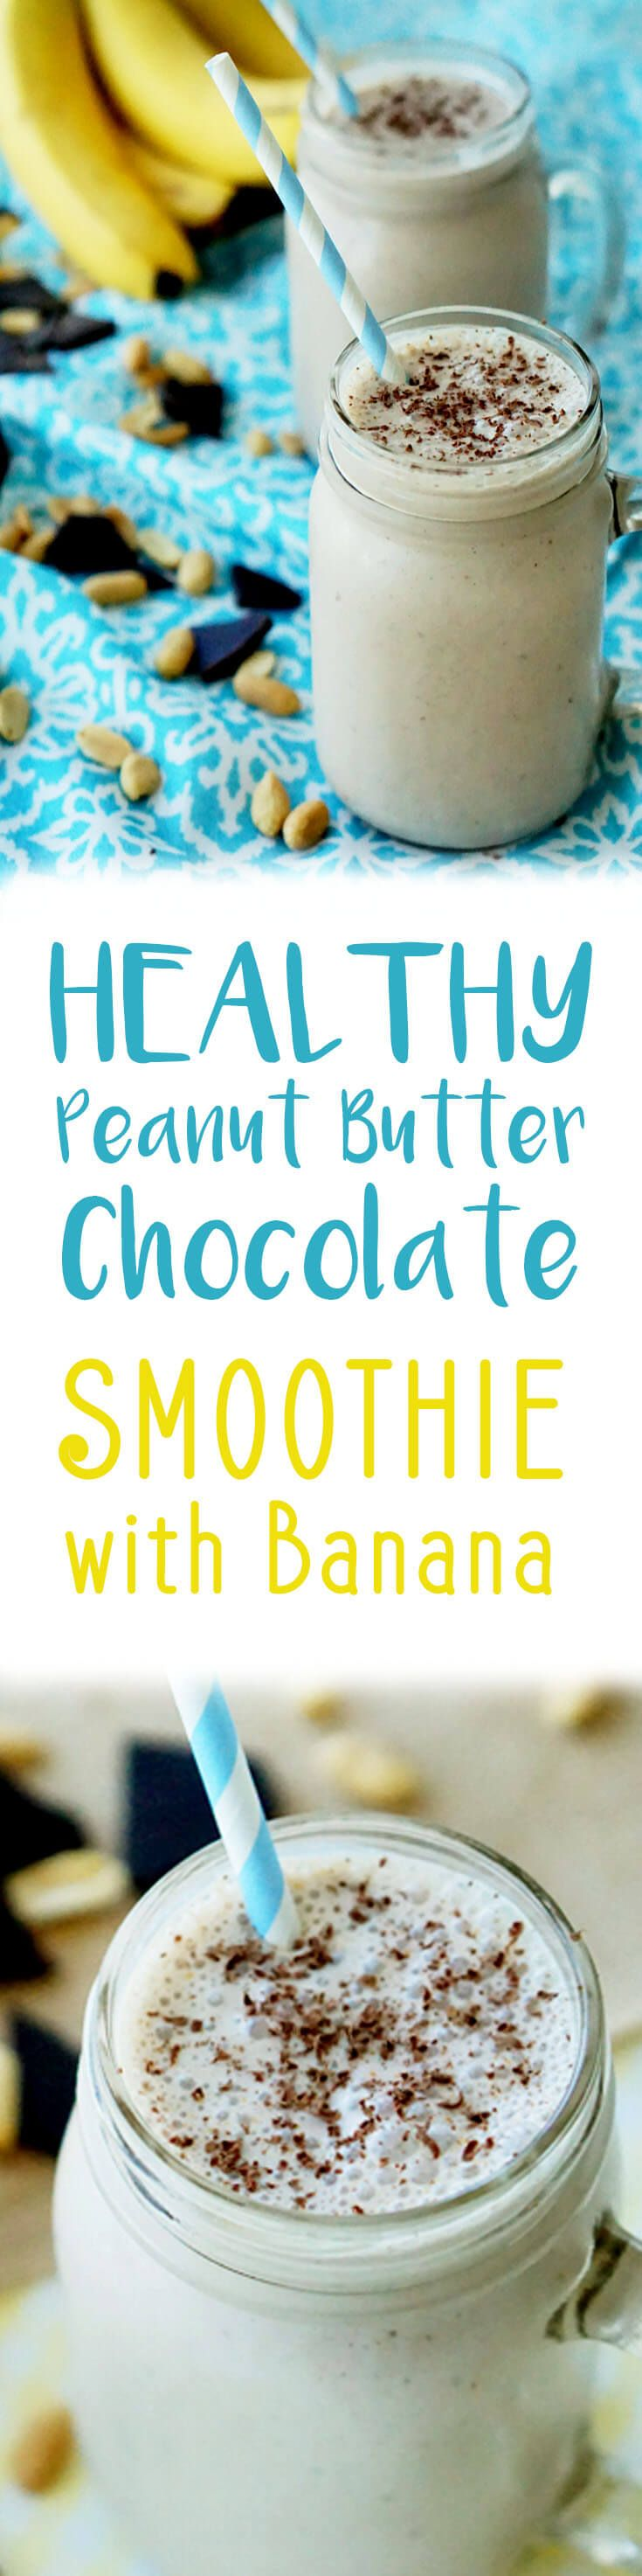 My favourite healthy peanut butter chocolate smoothie with banana and flax makes for a balanced breakfast or snack any day!